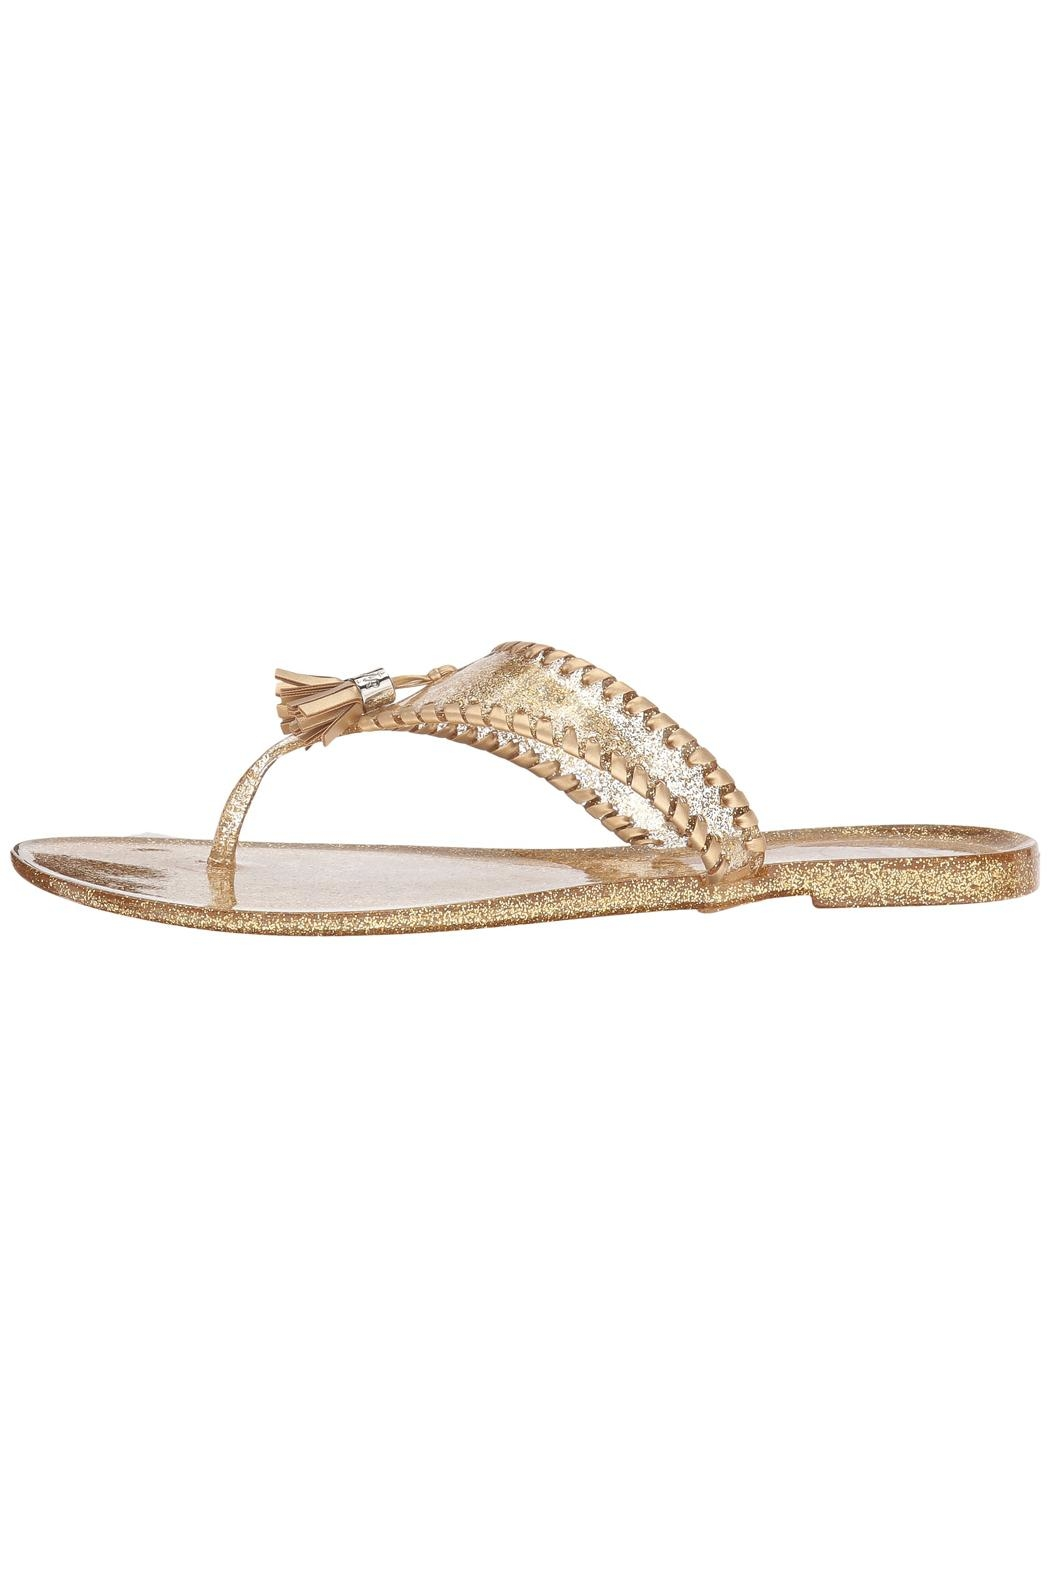 837adb033b1e Jack Rogers Sparkle Alana Jelly from Richmond by Trend. — Shoptiques